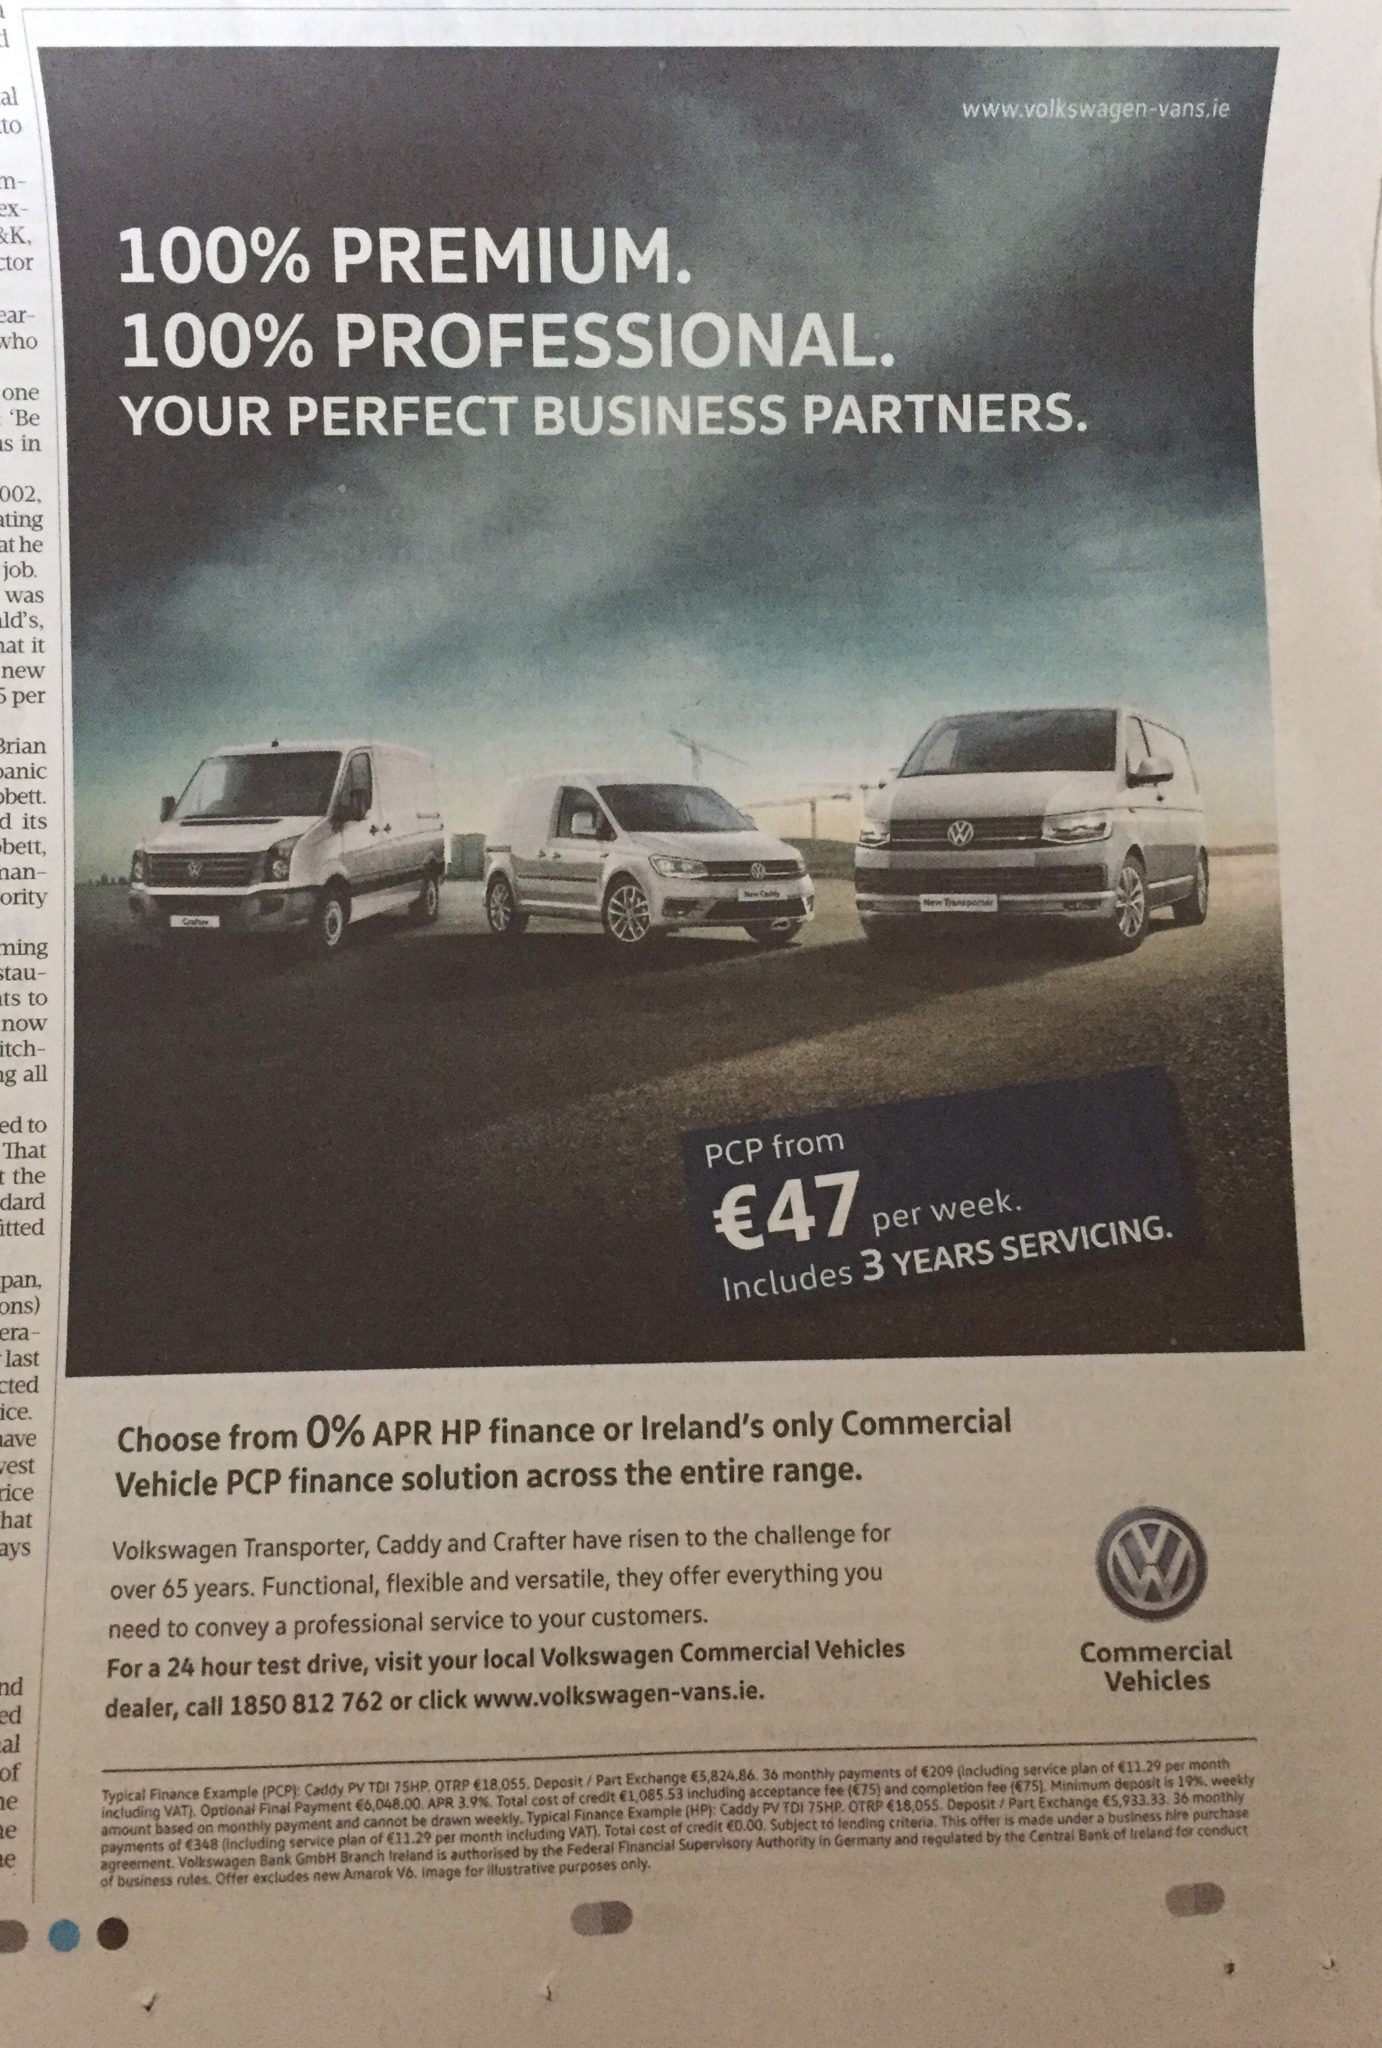 VW Commercial Vehicles – 100% Premium. 100% Professional. Your perfect business partners.